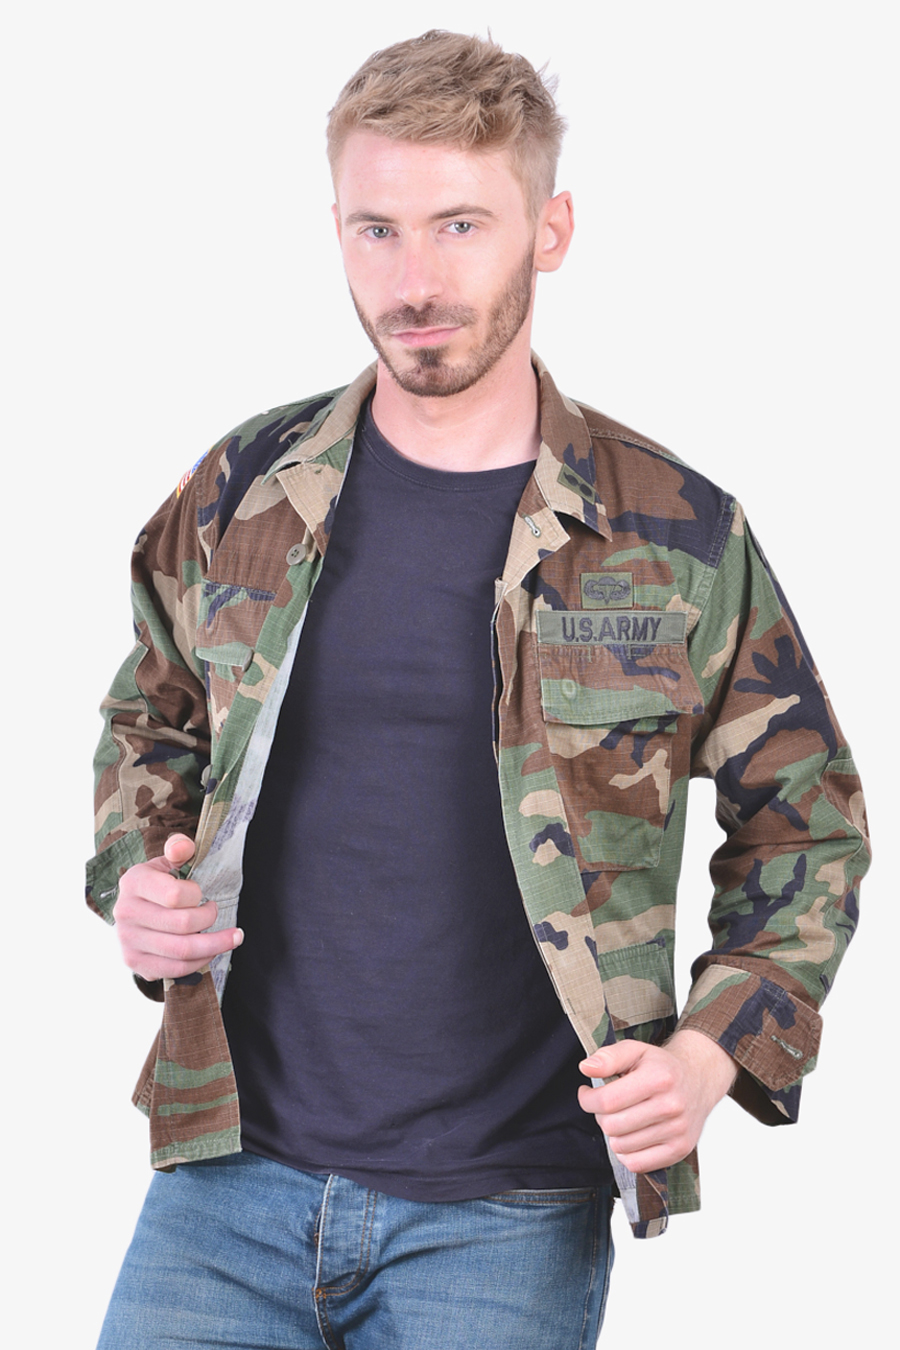 US Army Woodland BDU military shirt